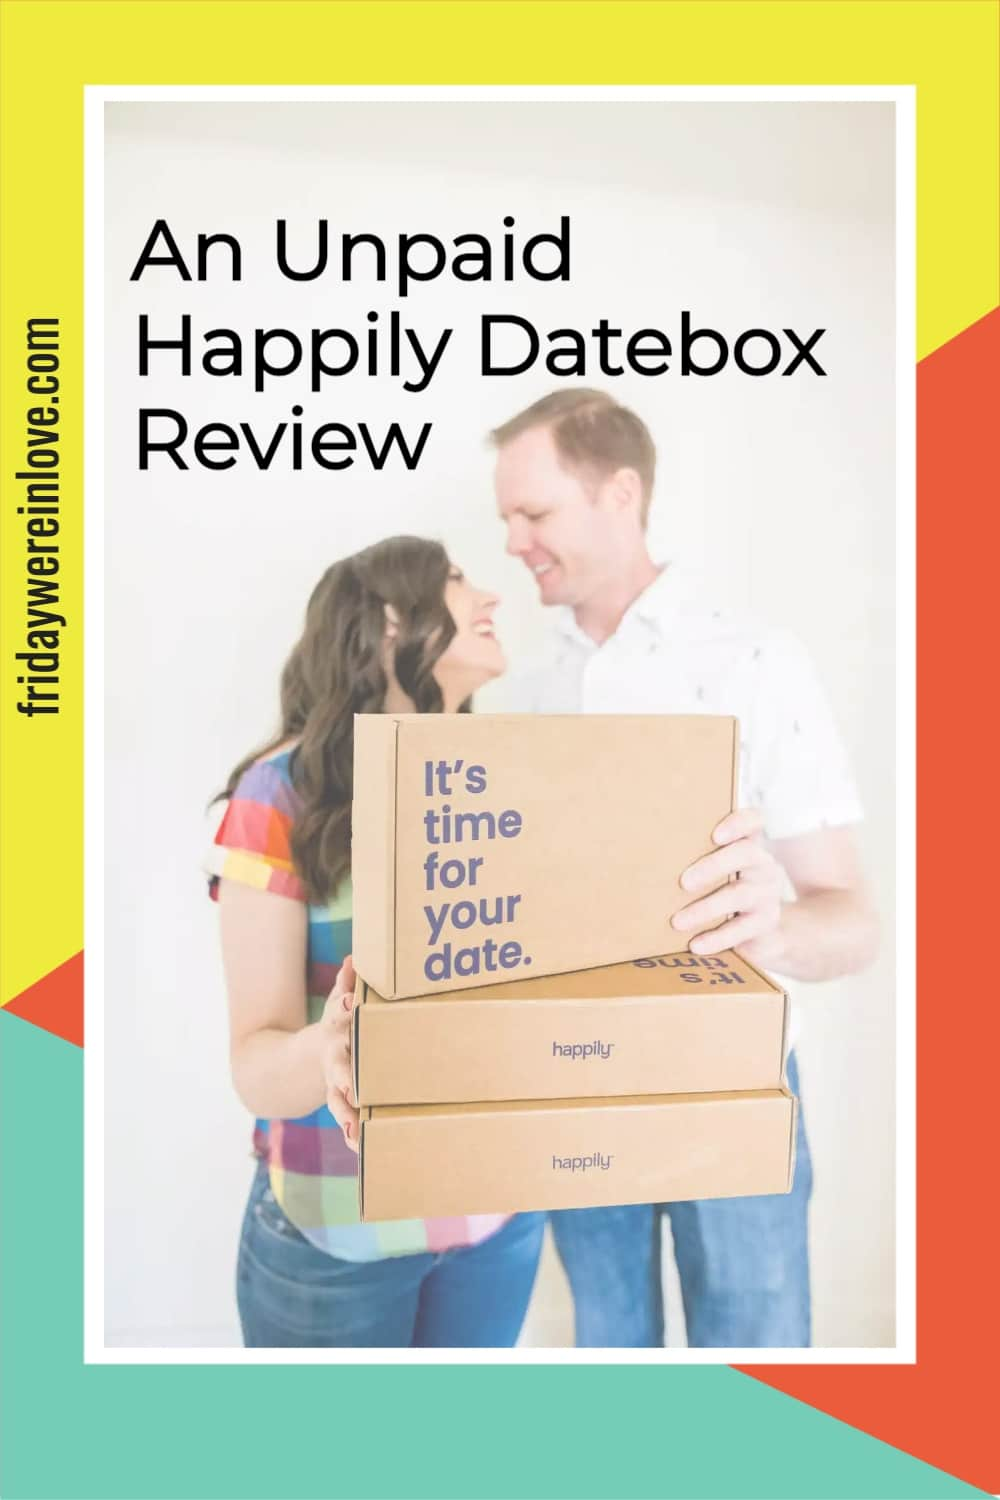 Happily Datebox Reviews